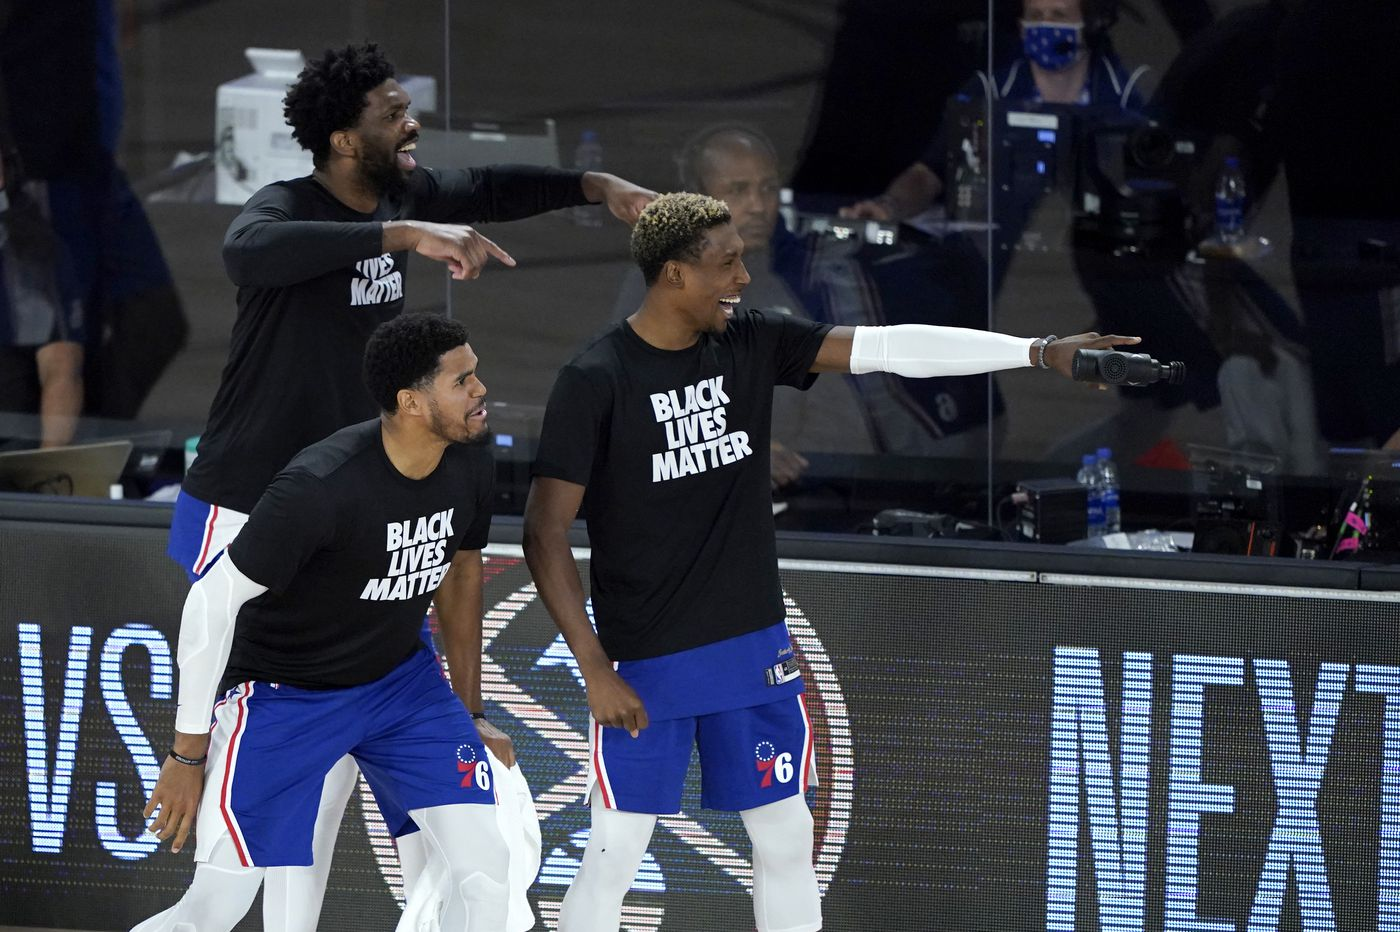 Sixers-Raptors best-worst: Toronto's Chris Boucher goes off, Joel Embiid's latest health scare, back and forth between benches